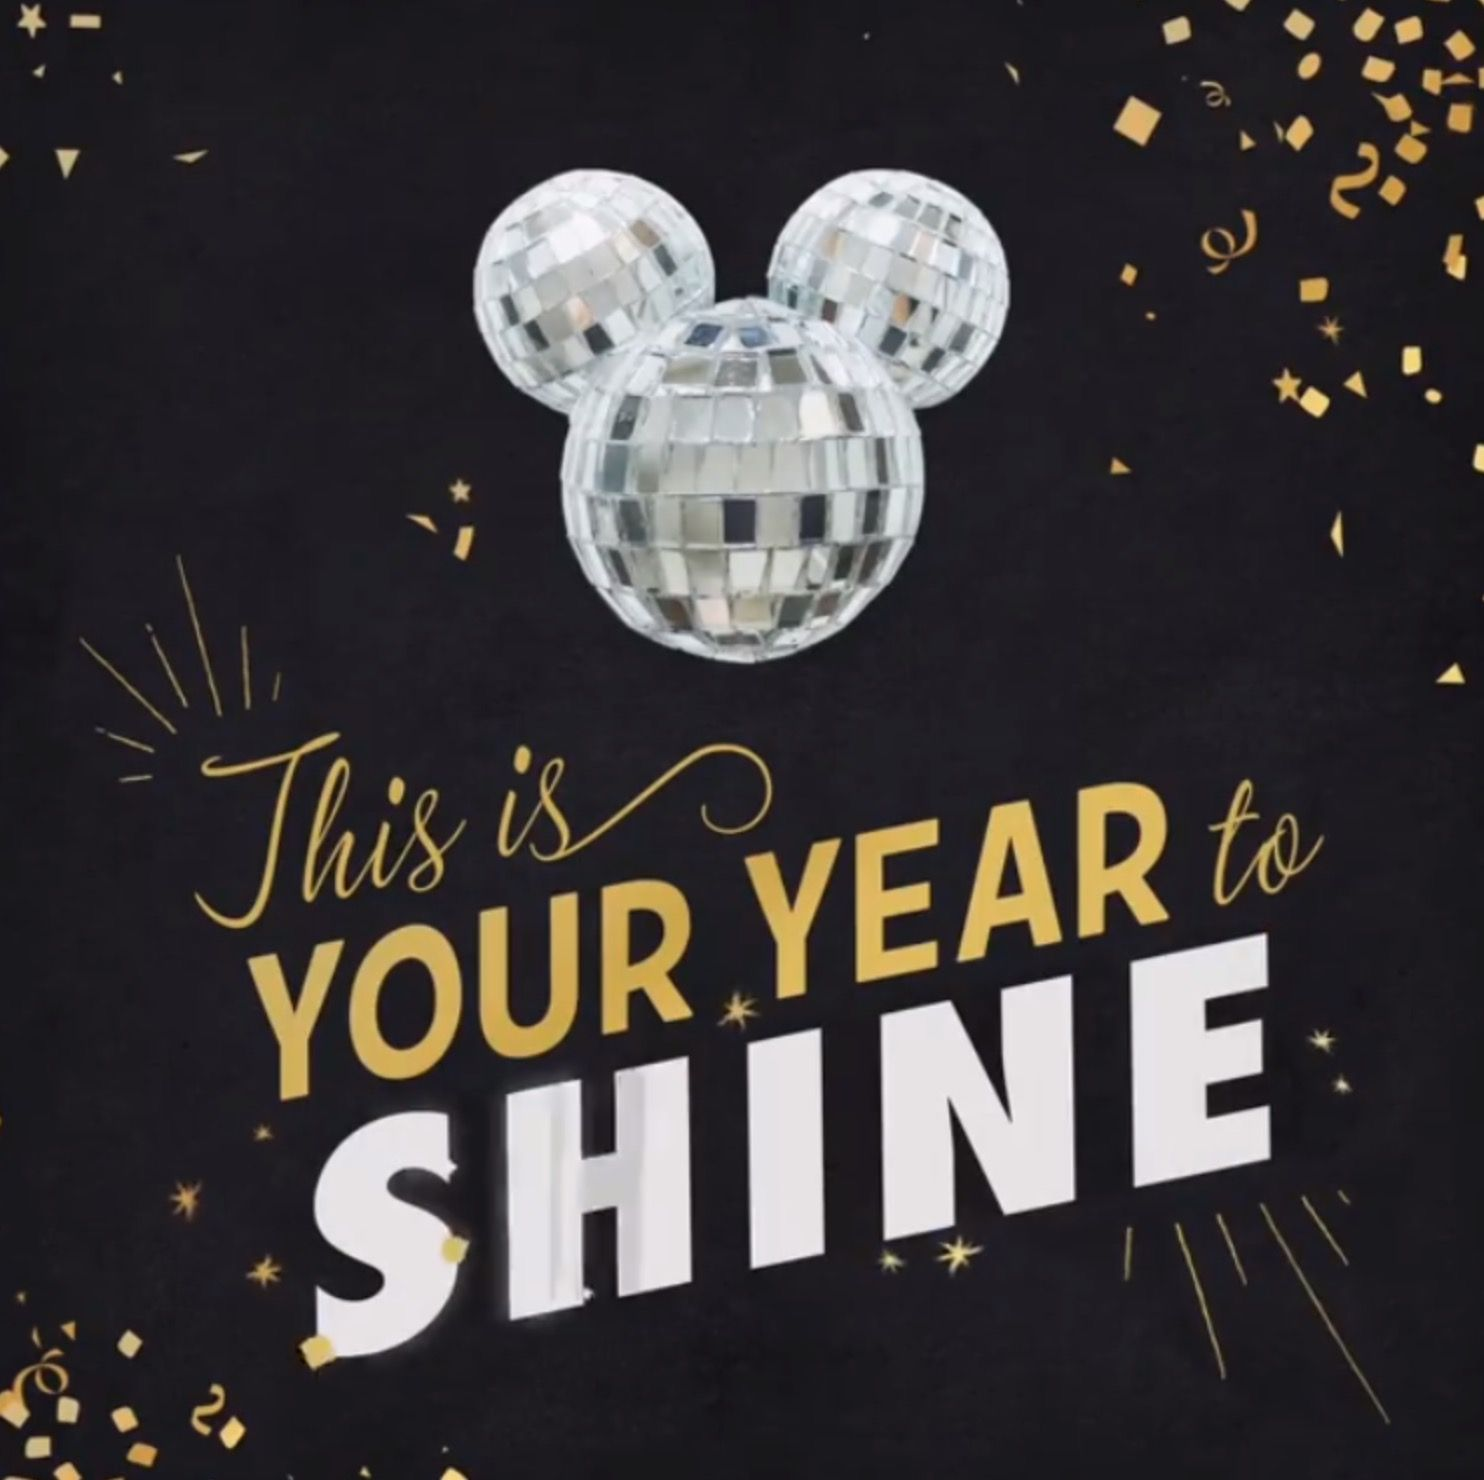 Walt Disney Christmas Quotes.This Is Your Year To Shine Quotes Disney New Year